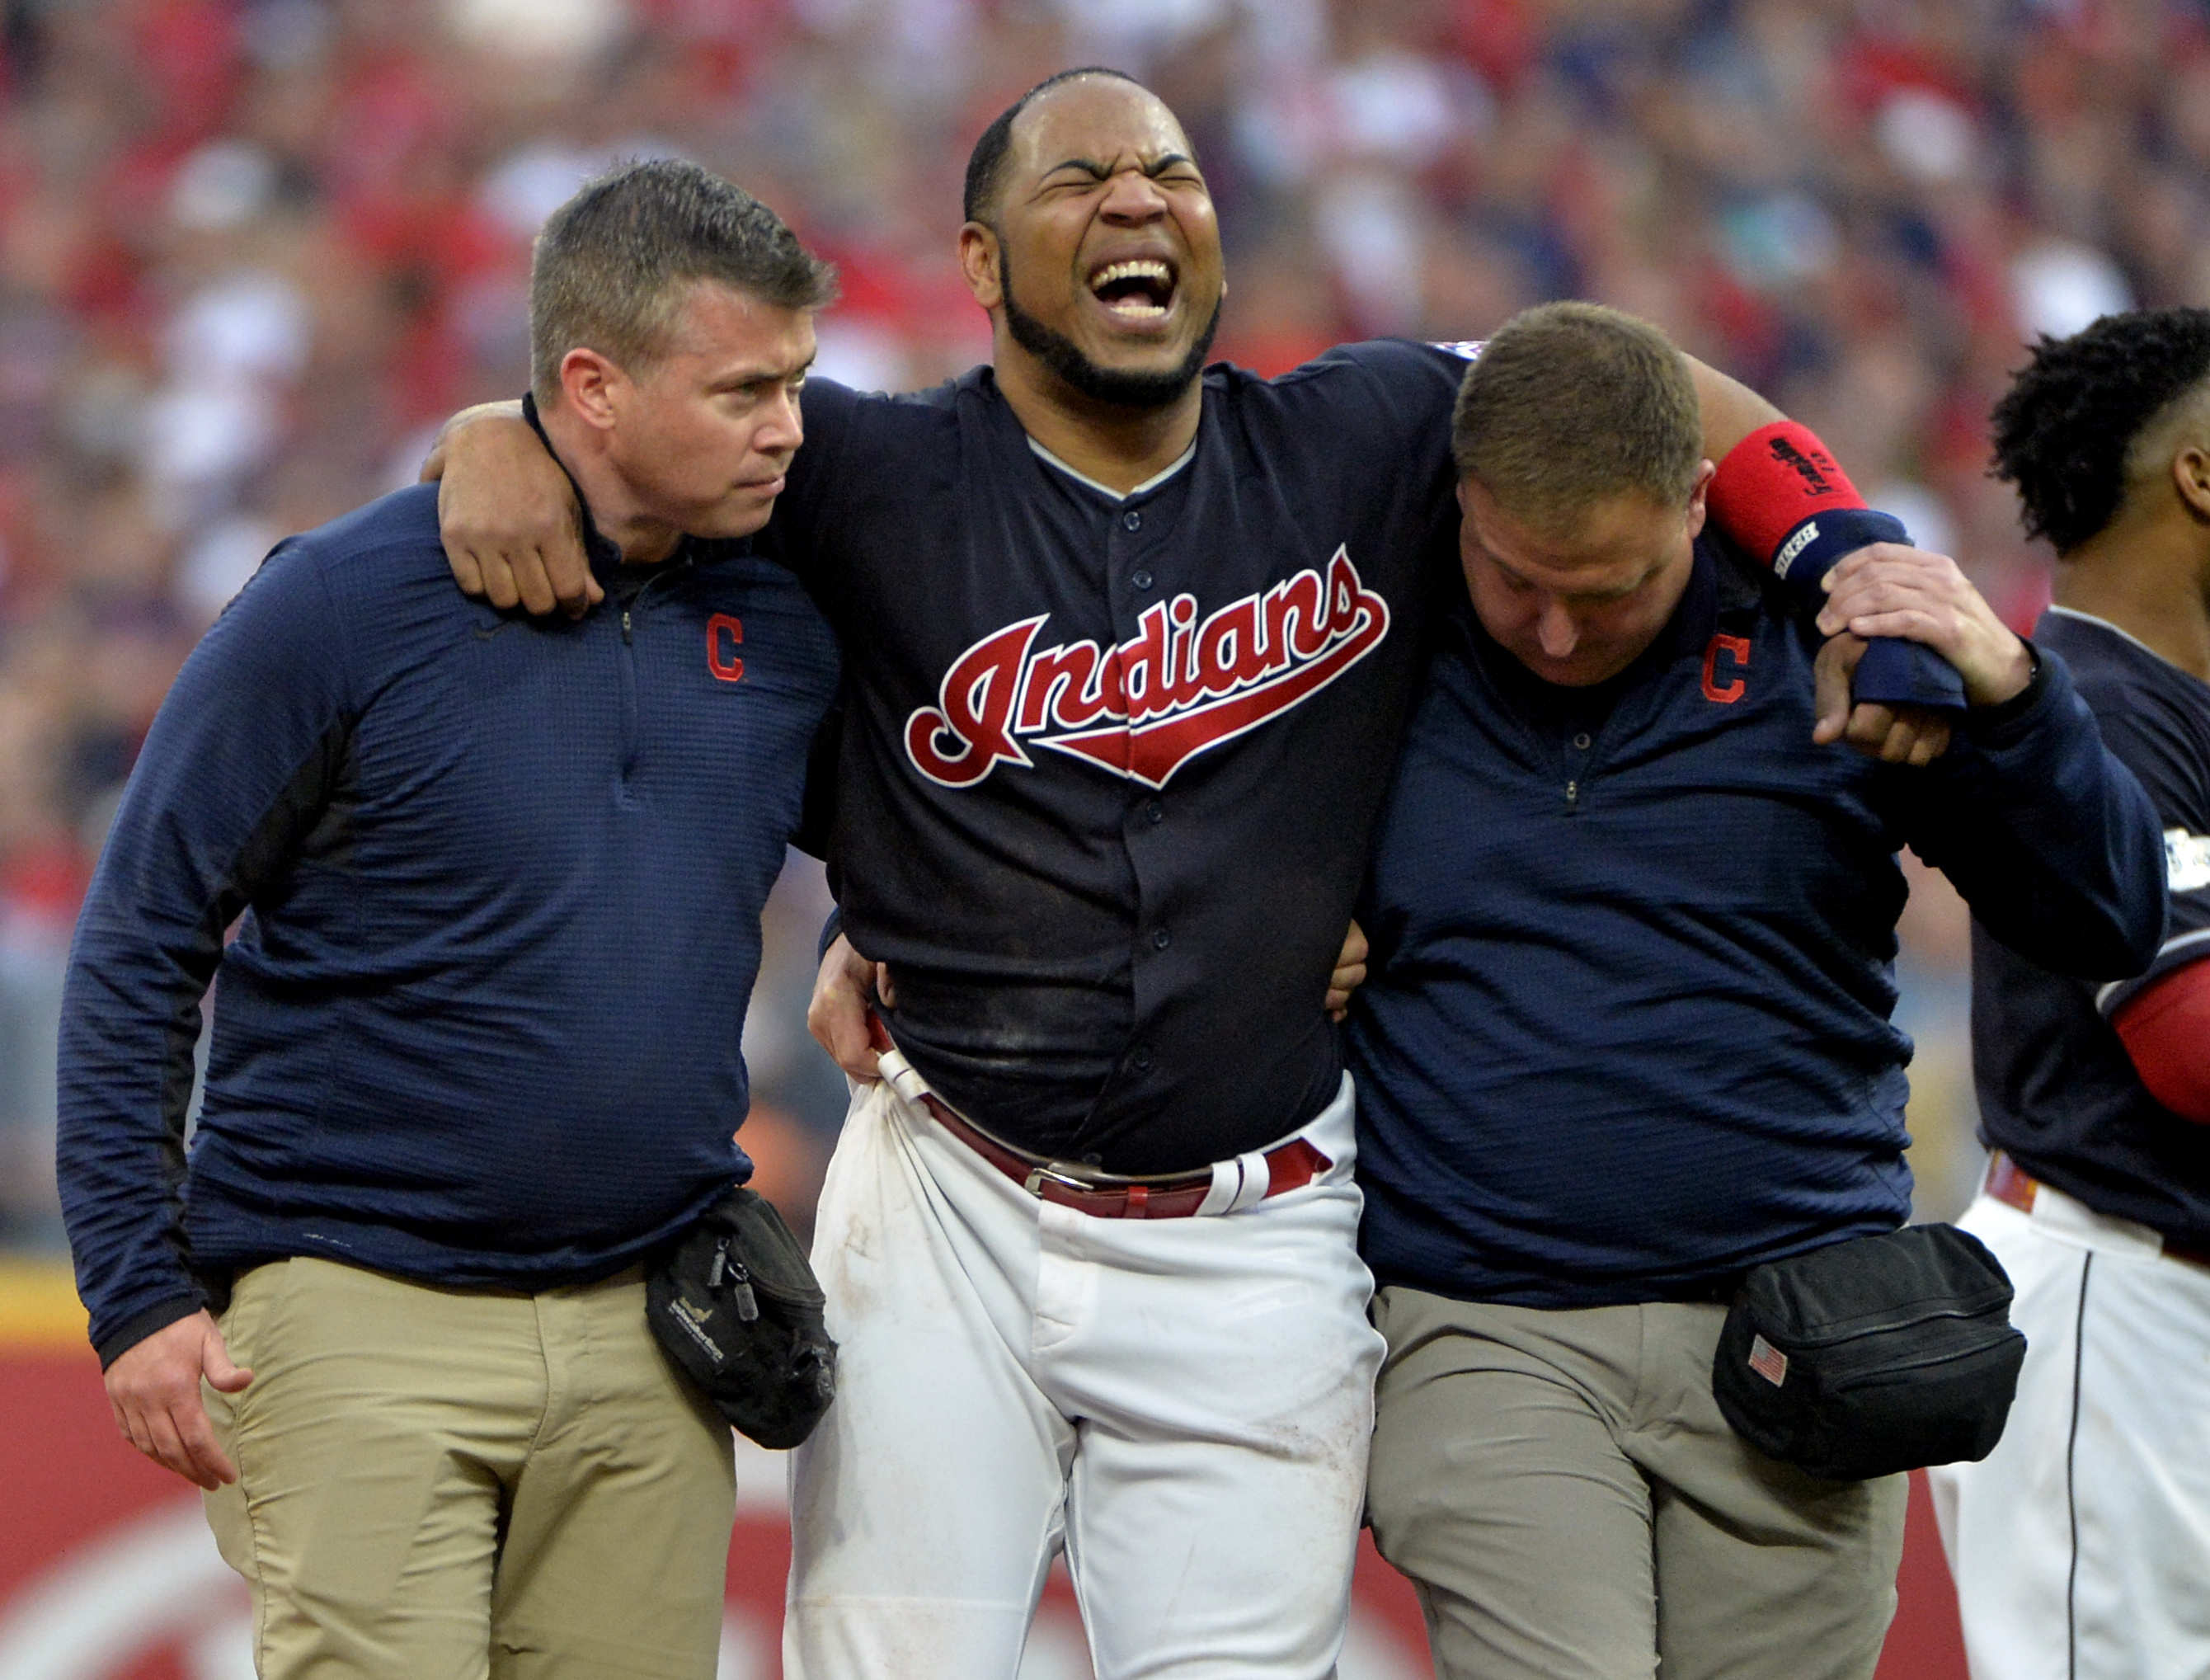 Edwin Encarnacion avoids serious injury after stomach-turning ankle roll